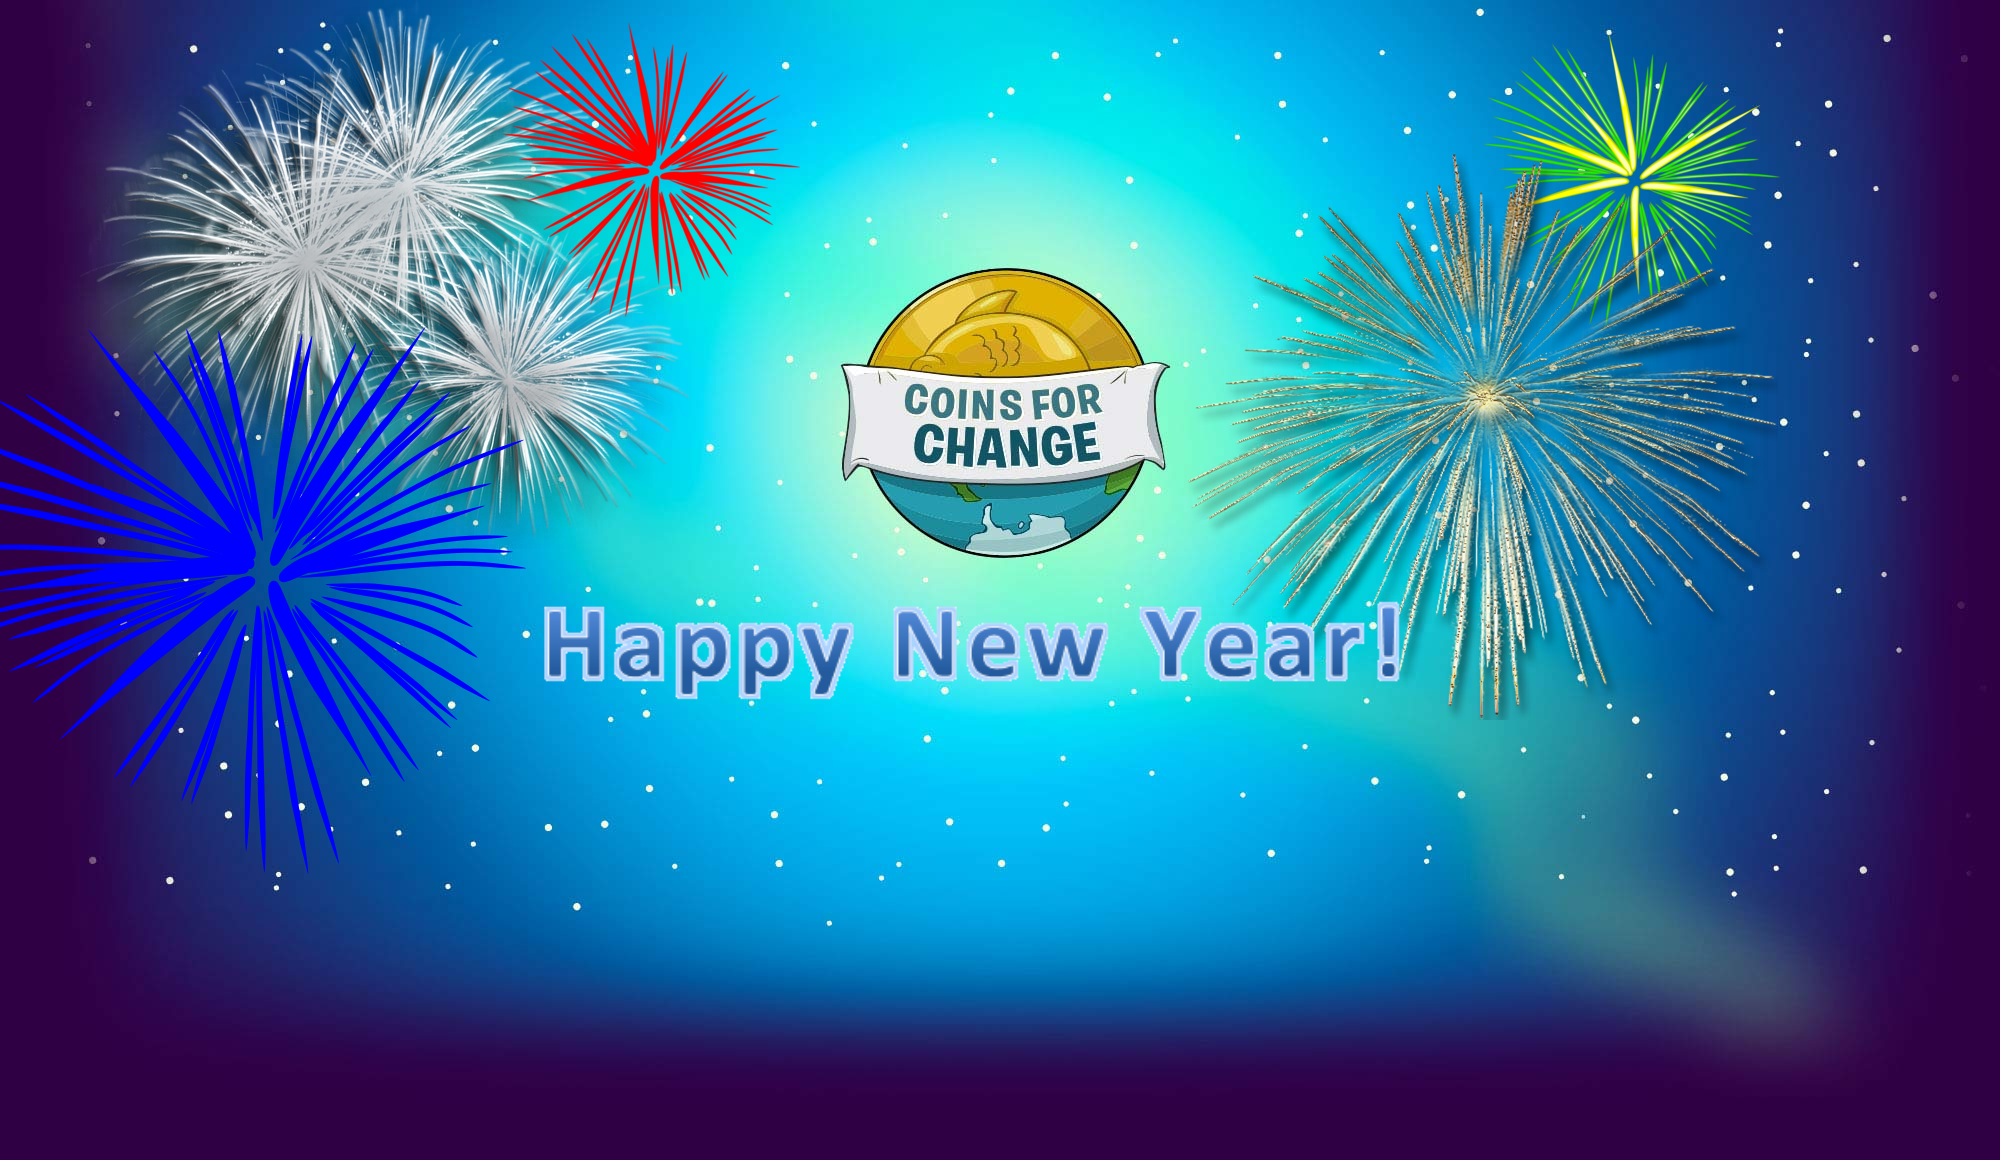 New Year Background Images Png Free New Year Background Images Png Transparent Images 62371 Pngio